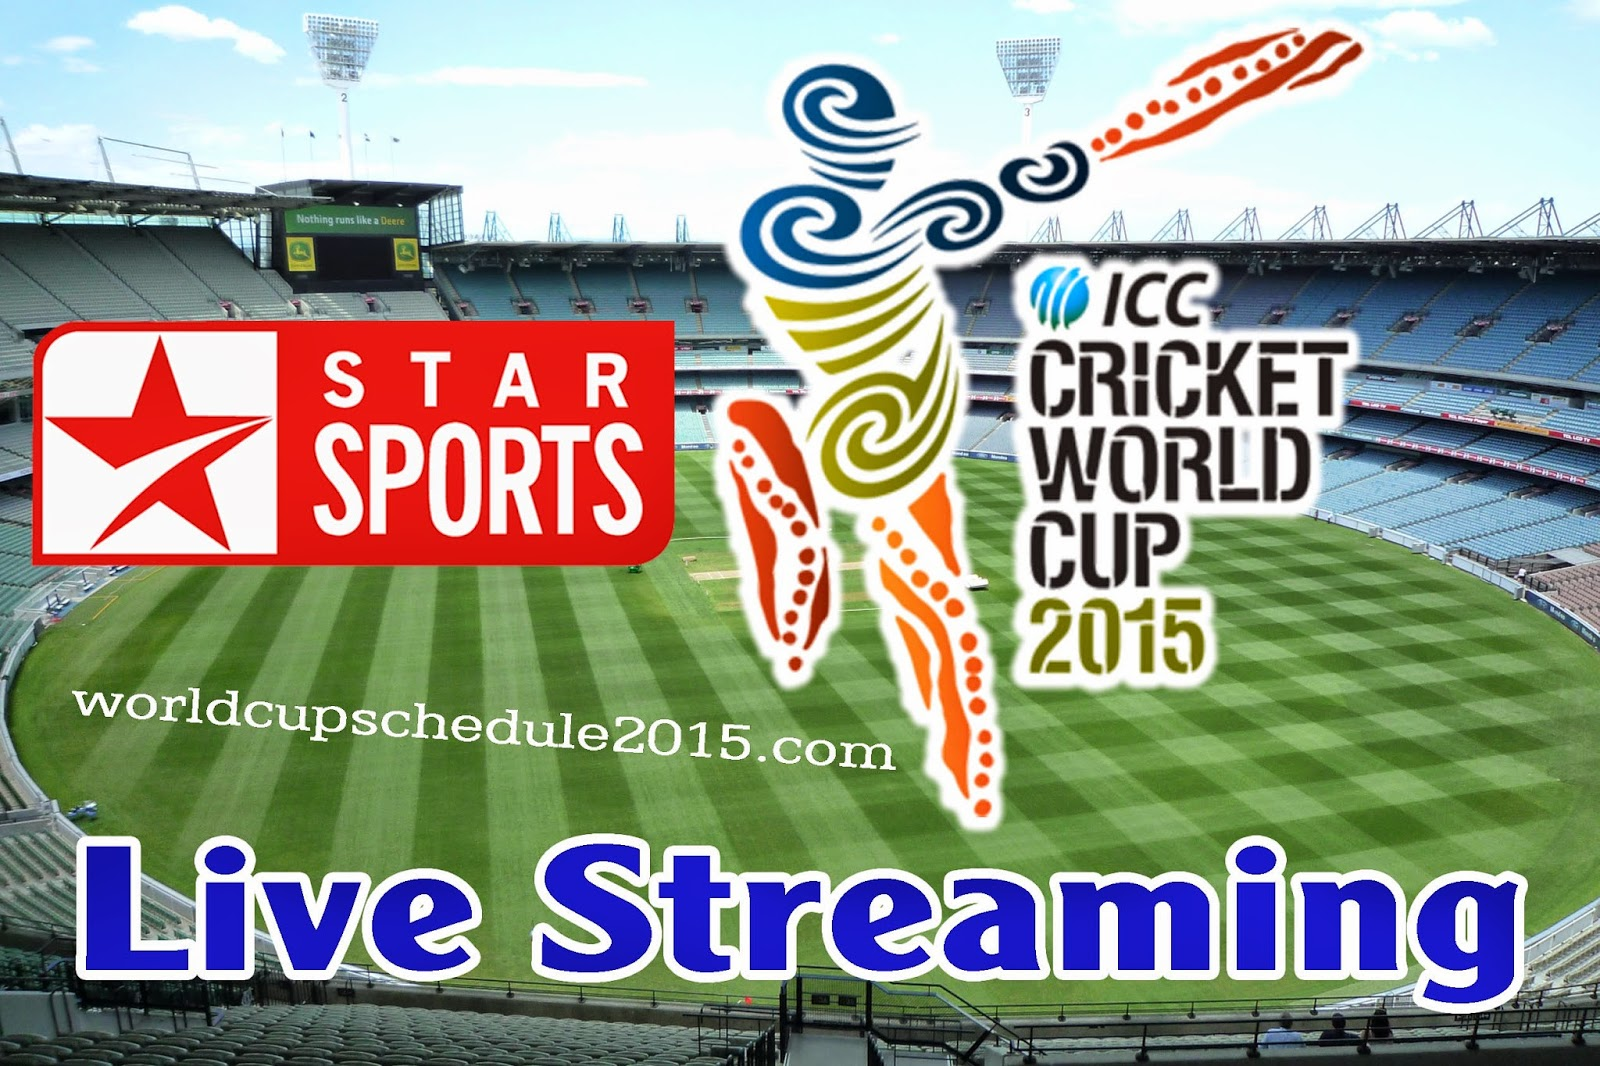 ICC Cricket World Cup Live Streaming & TV Channel, CWC